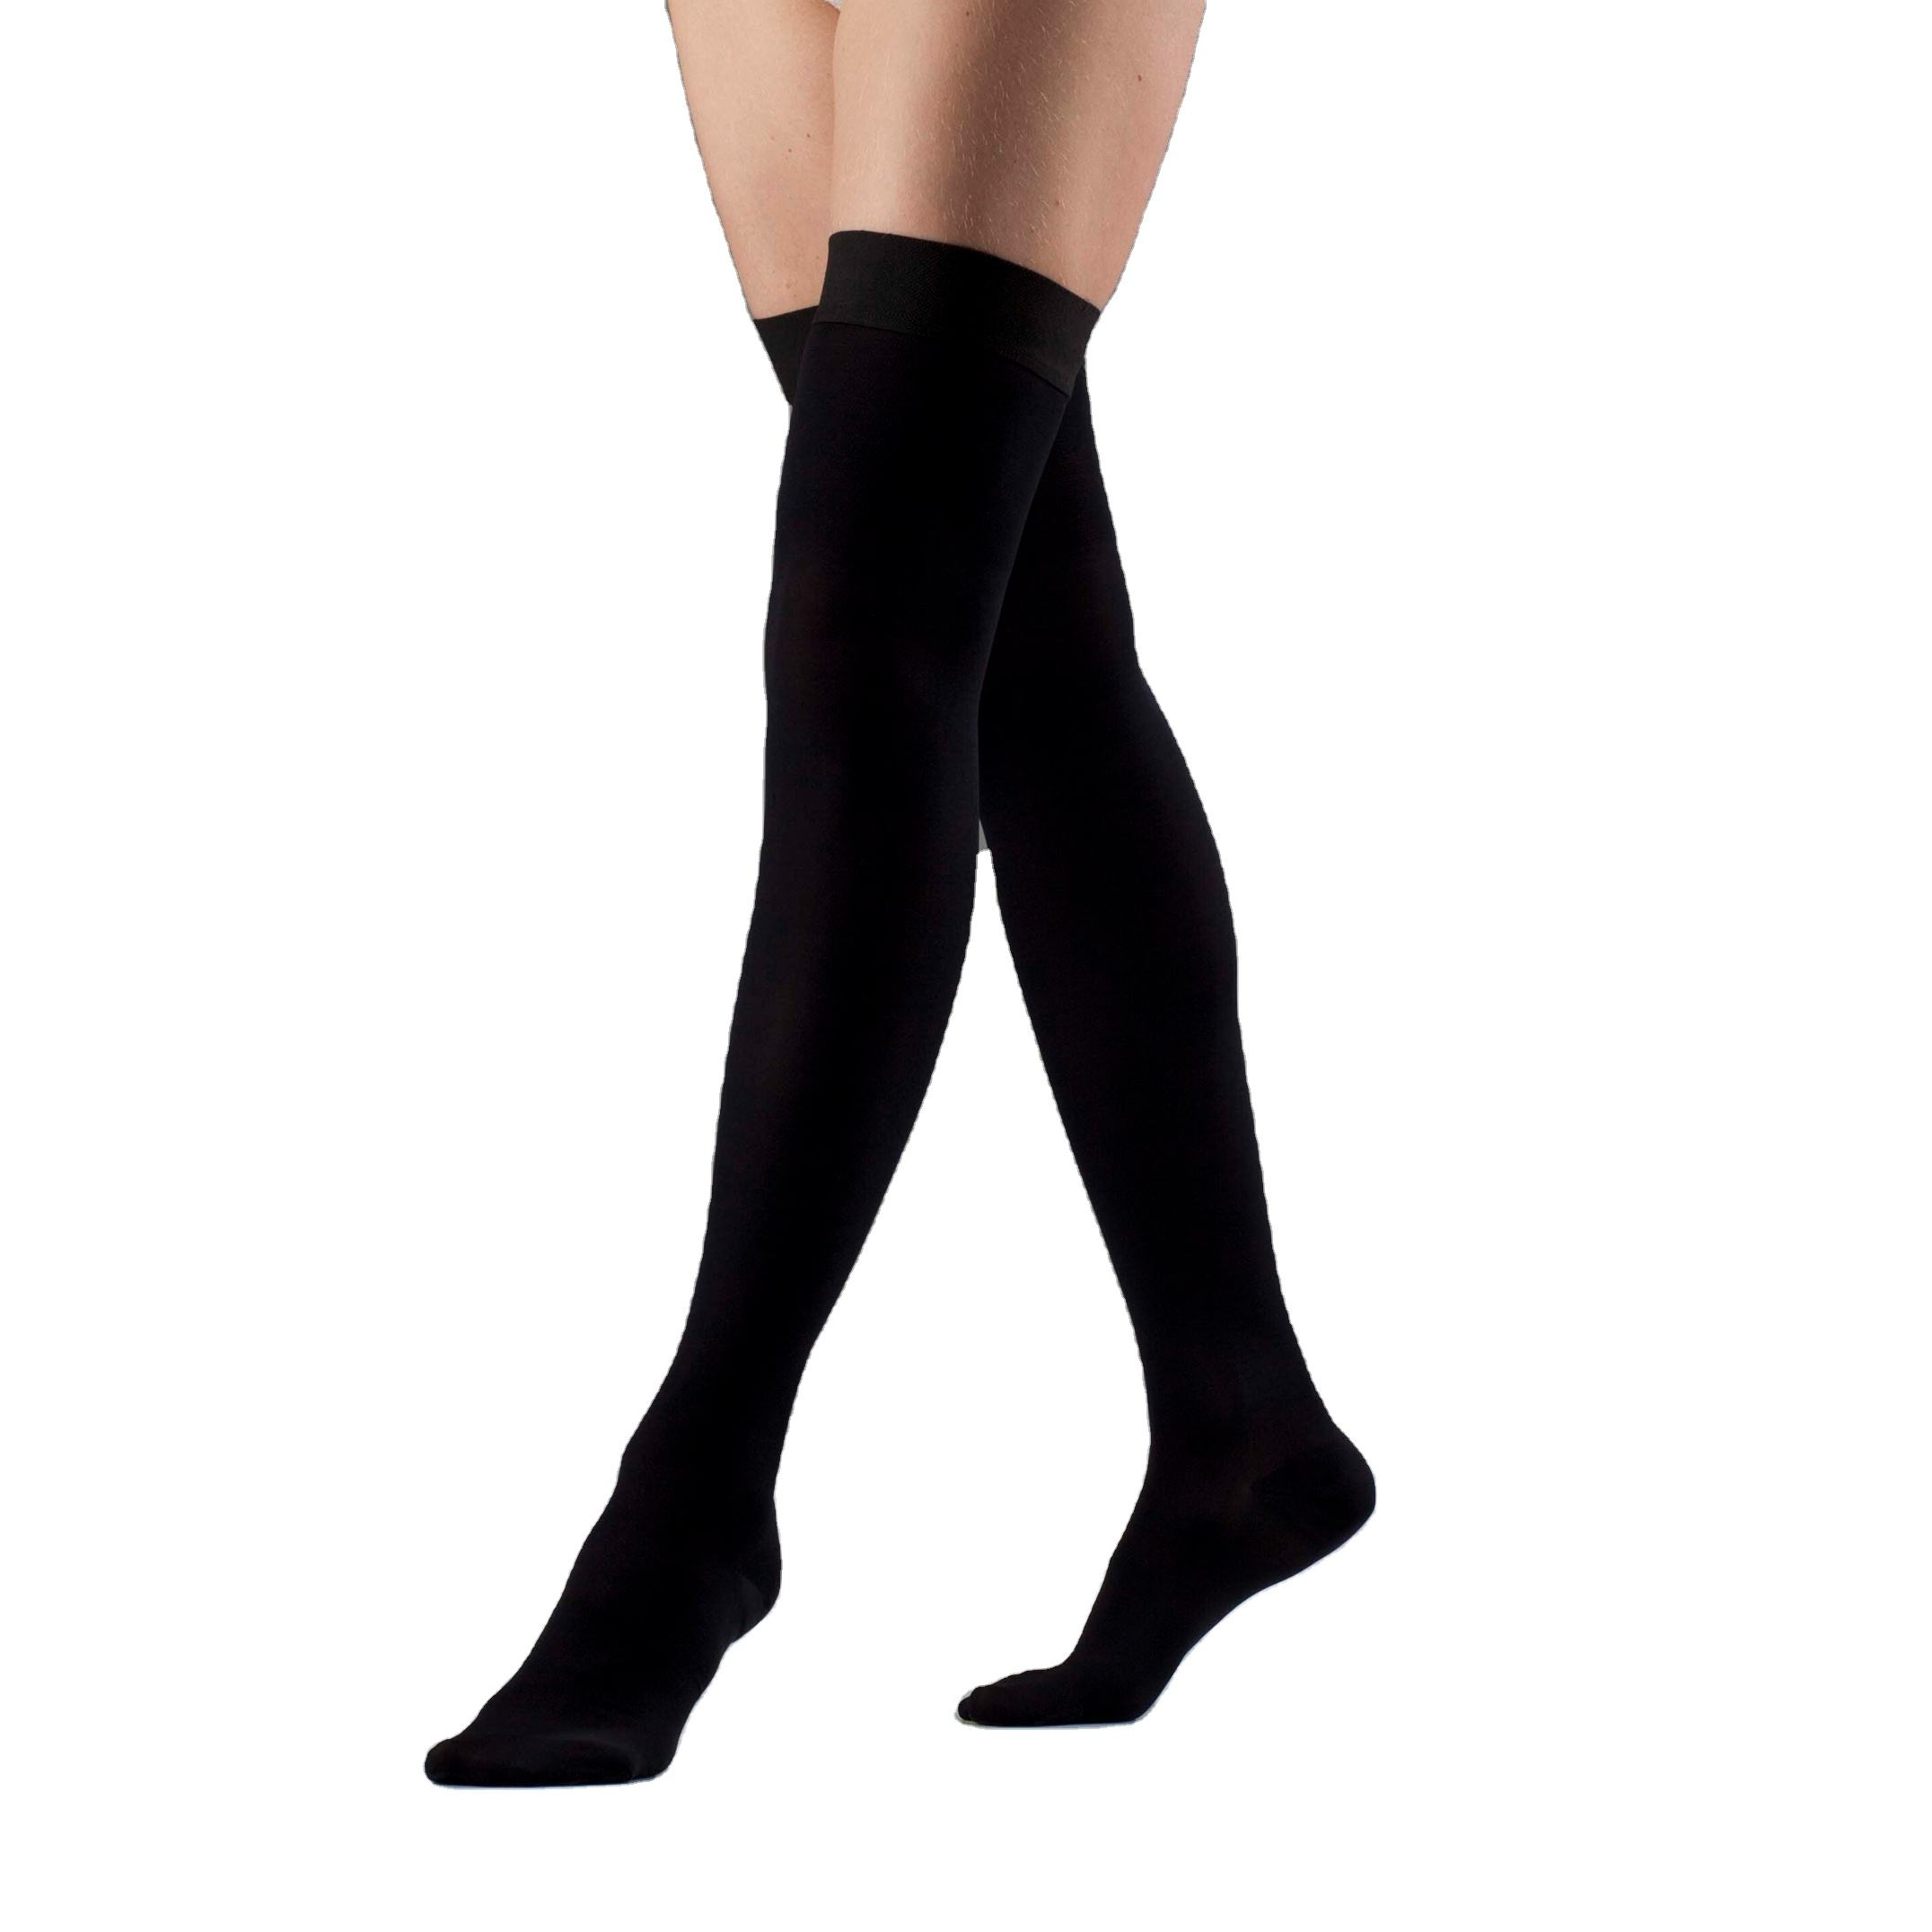 Comfort and Support Series Thigh High Black Low Compression Medical Stockings